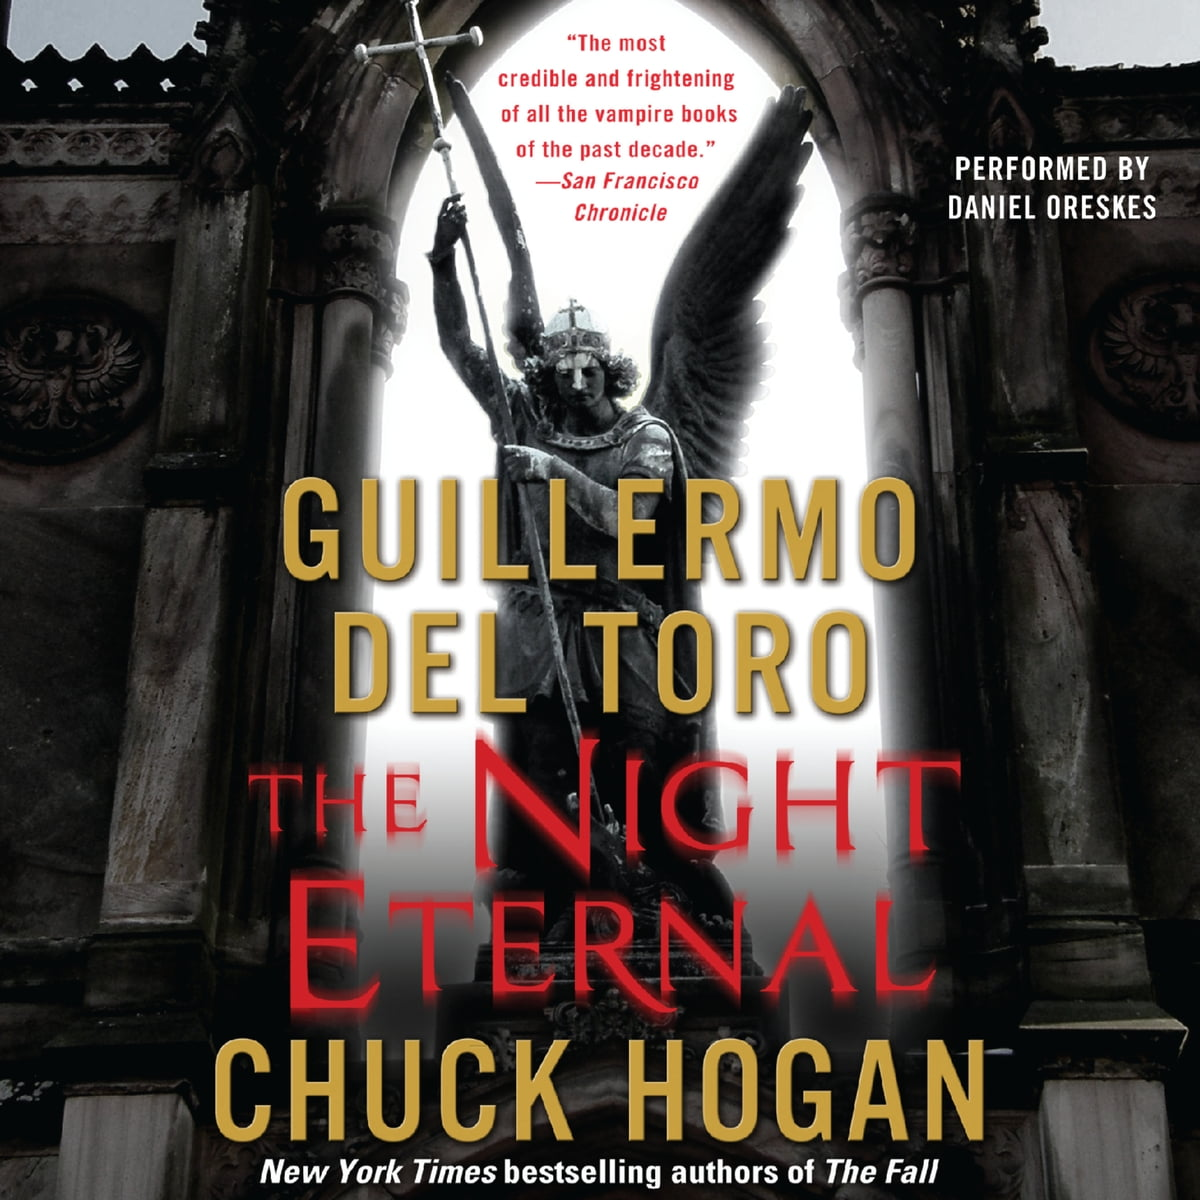 The Night Eternal Audiobook by Chuck Hogan - 9780062082725 | Rakuten Kobo